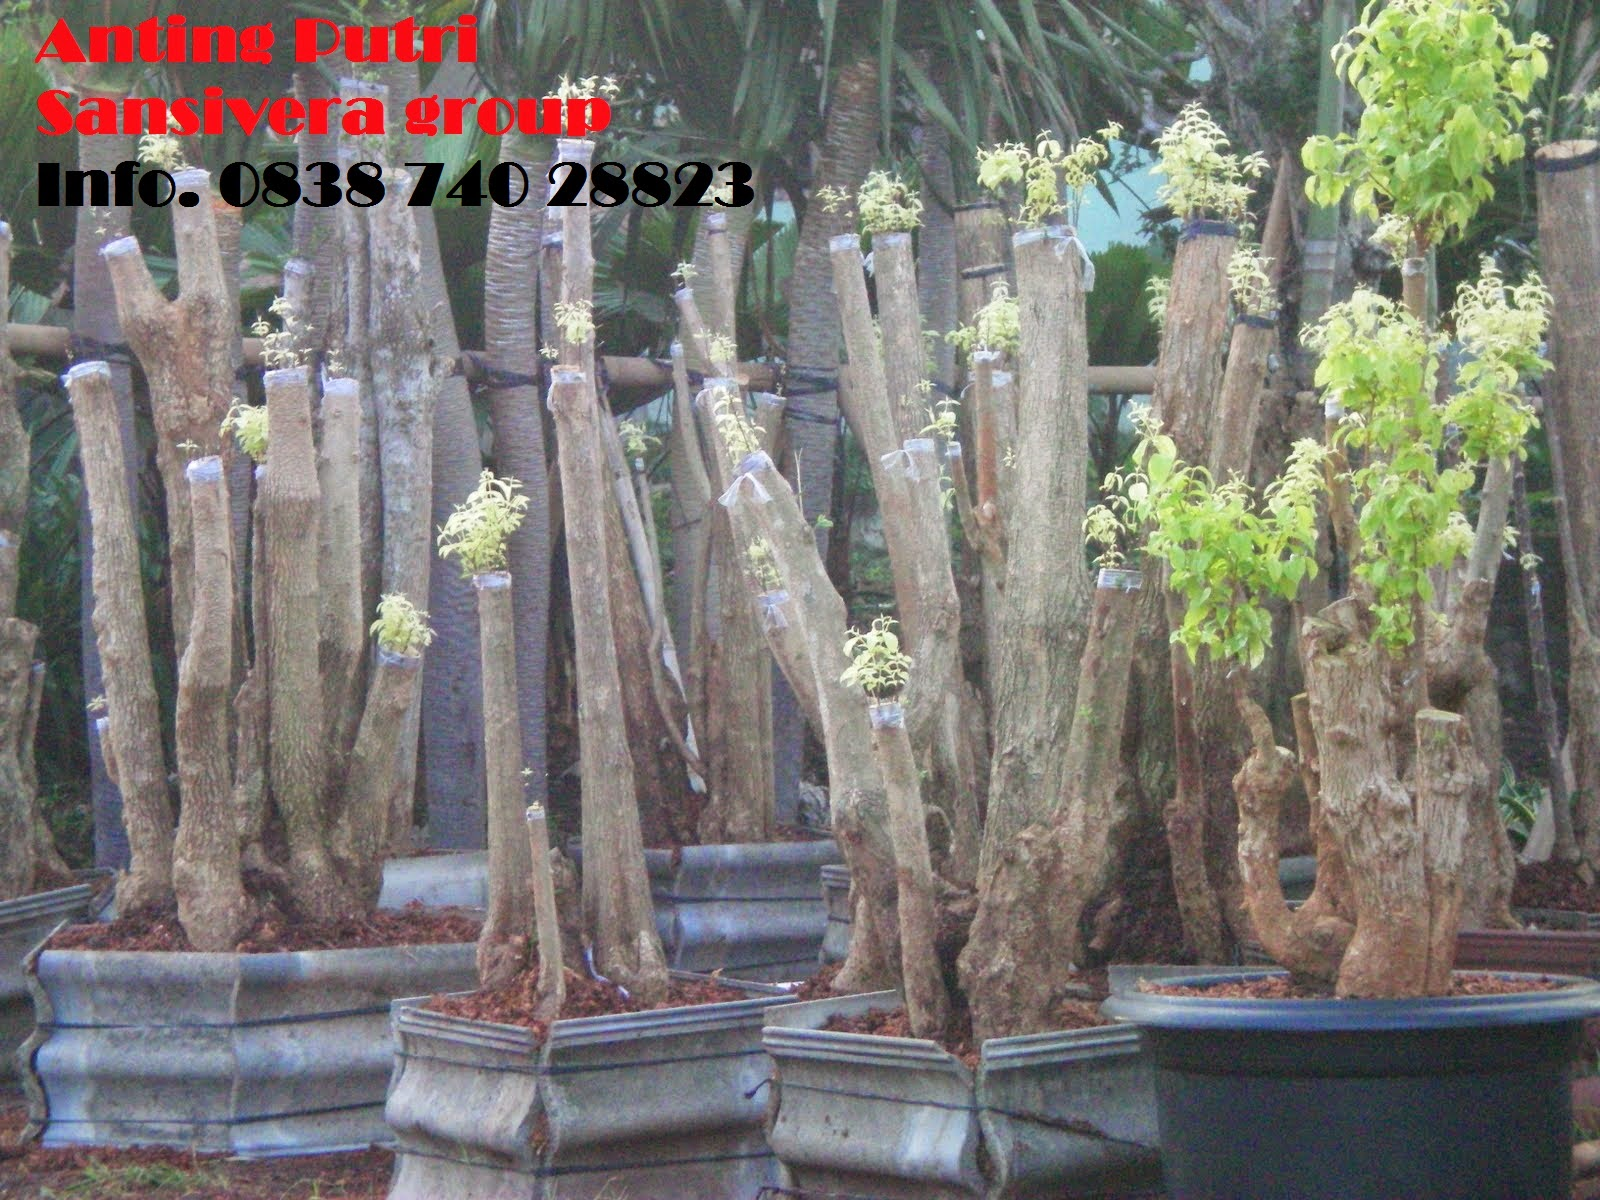 anting-putri-bonsai